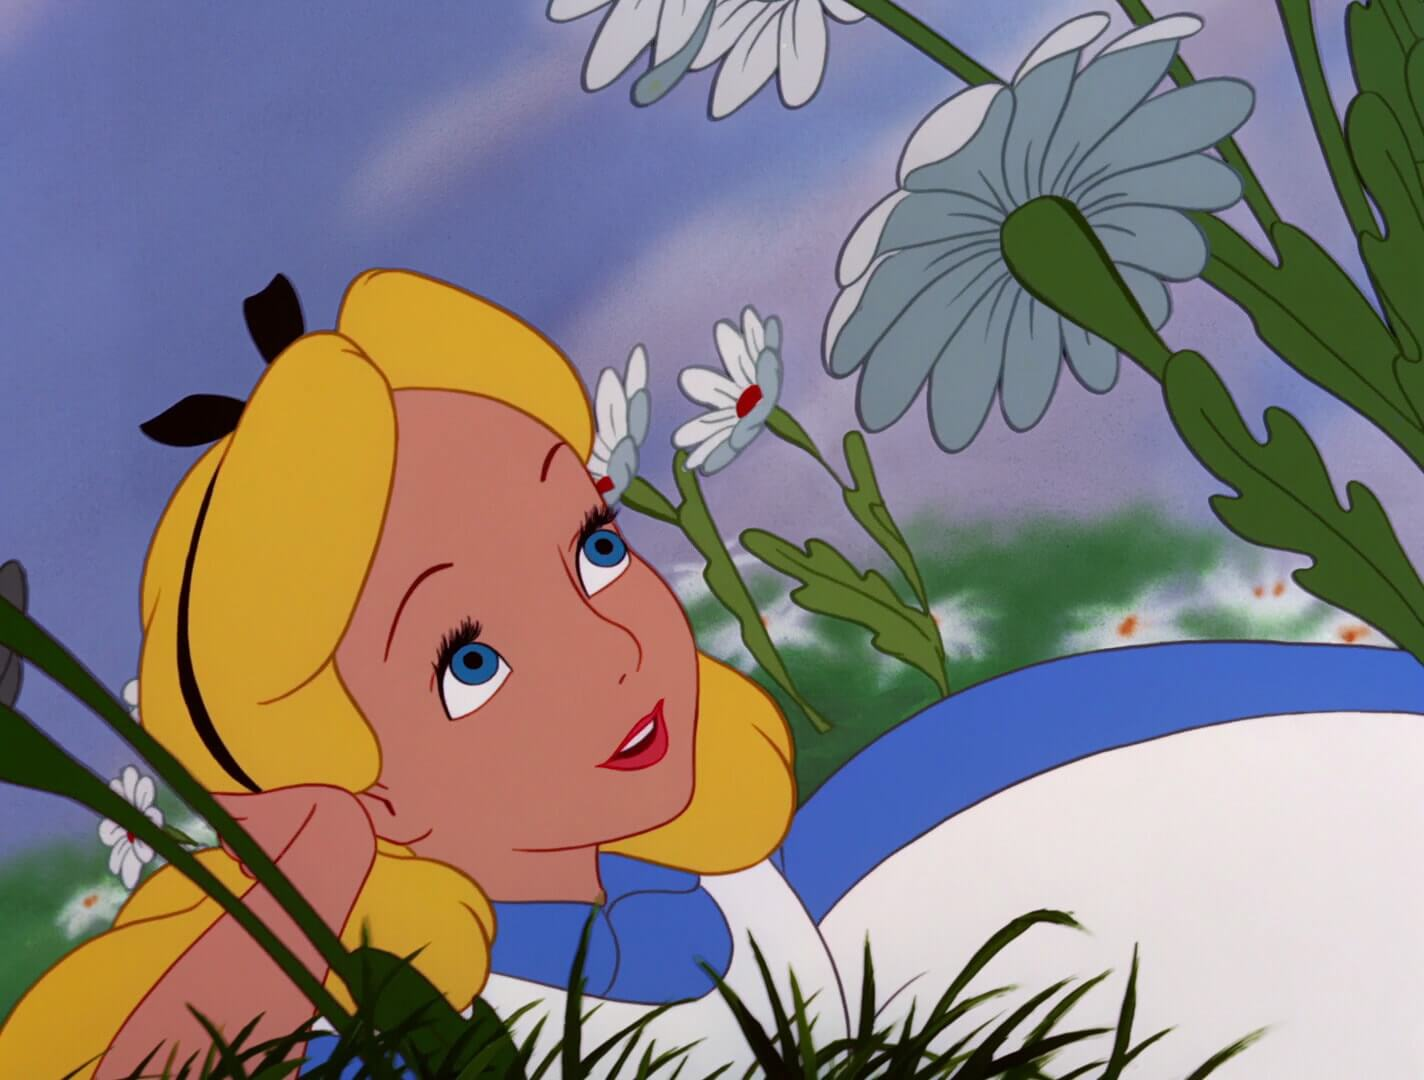 Character Archetypes - Alice in Wonderland